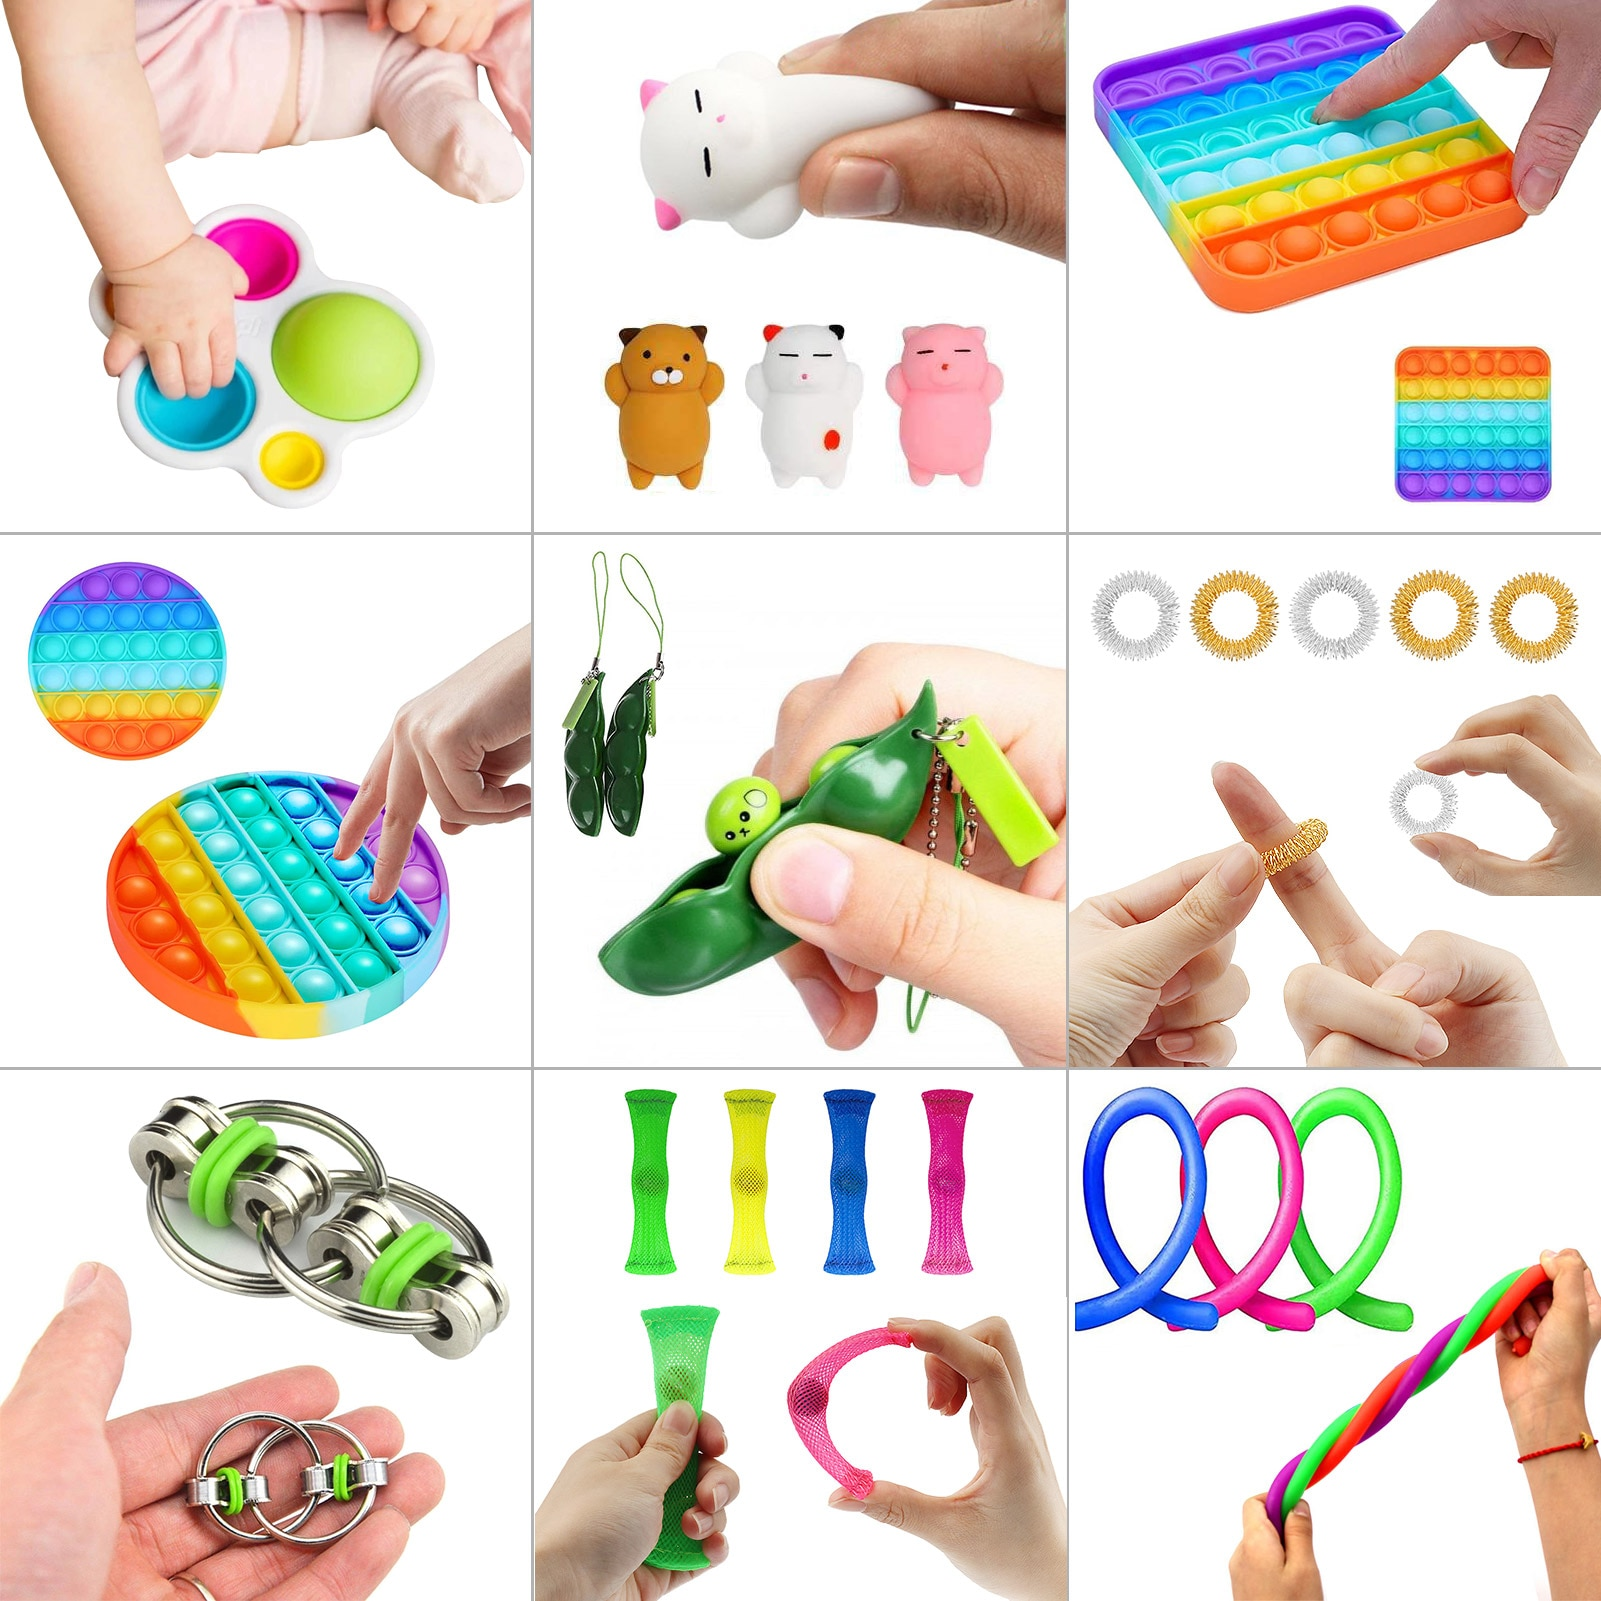 23Pack Pop it Fidget Sensory Toy Set for Adults Kids Stress Relief Toys Autism Special Needs Anti Stress Anxiety Relief Hand Toy enlarge